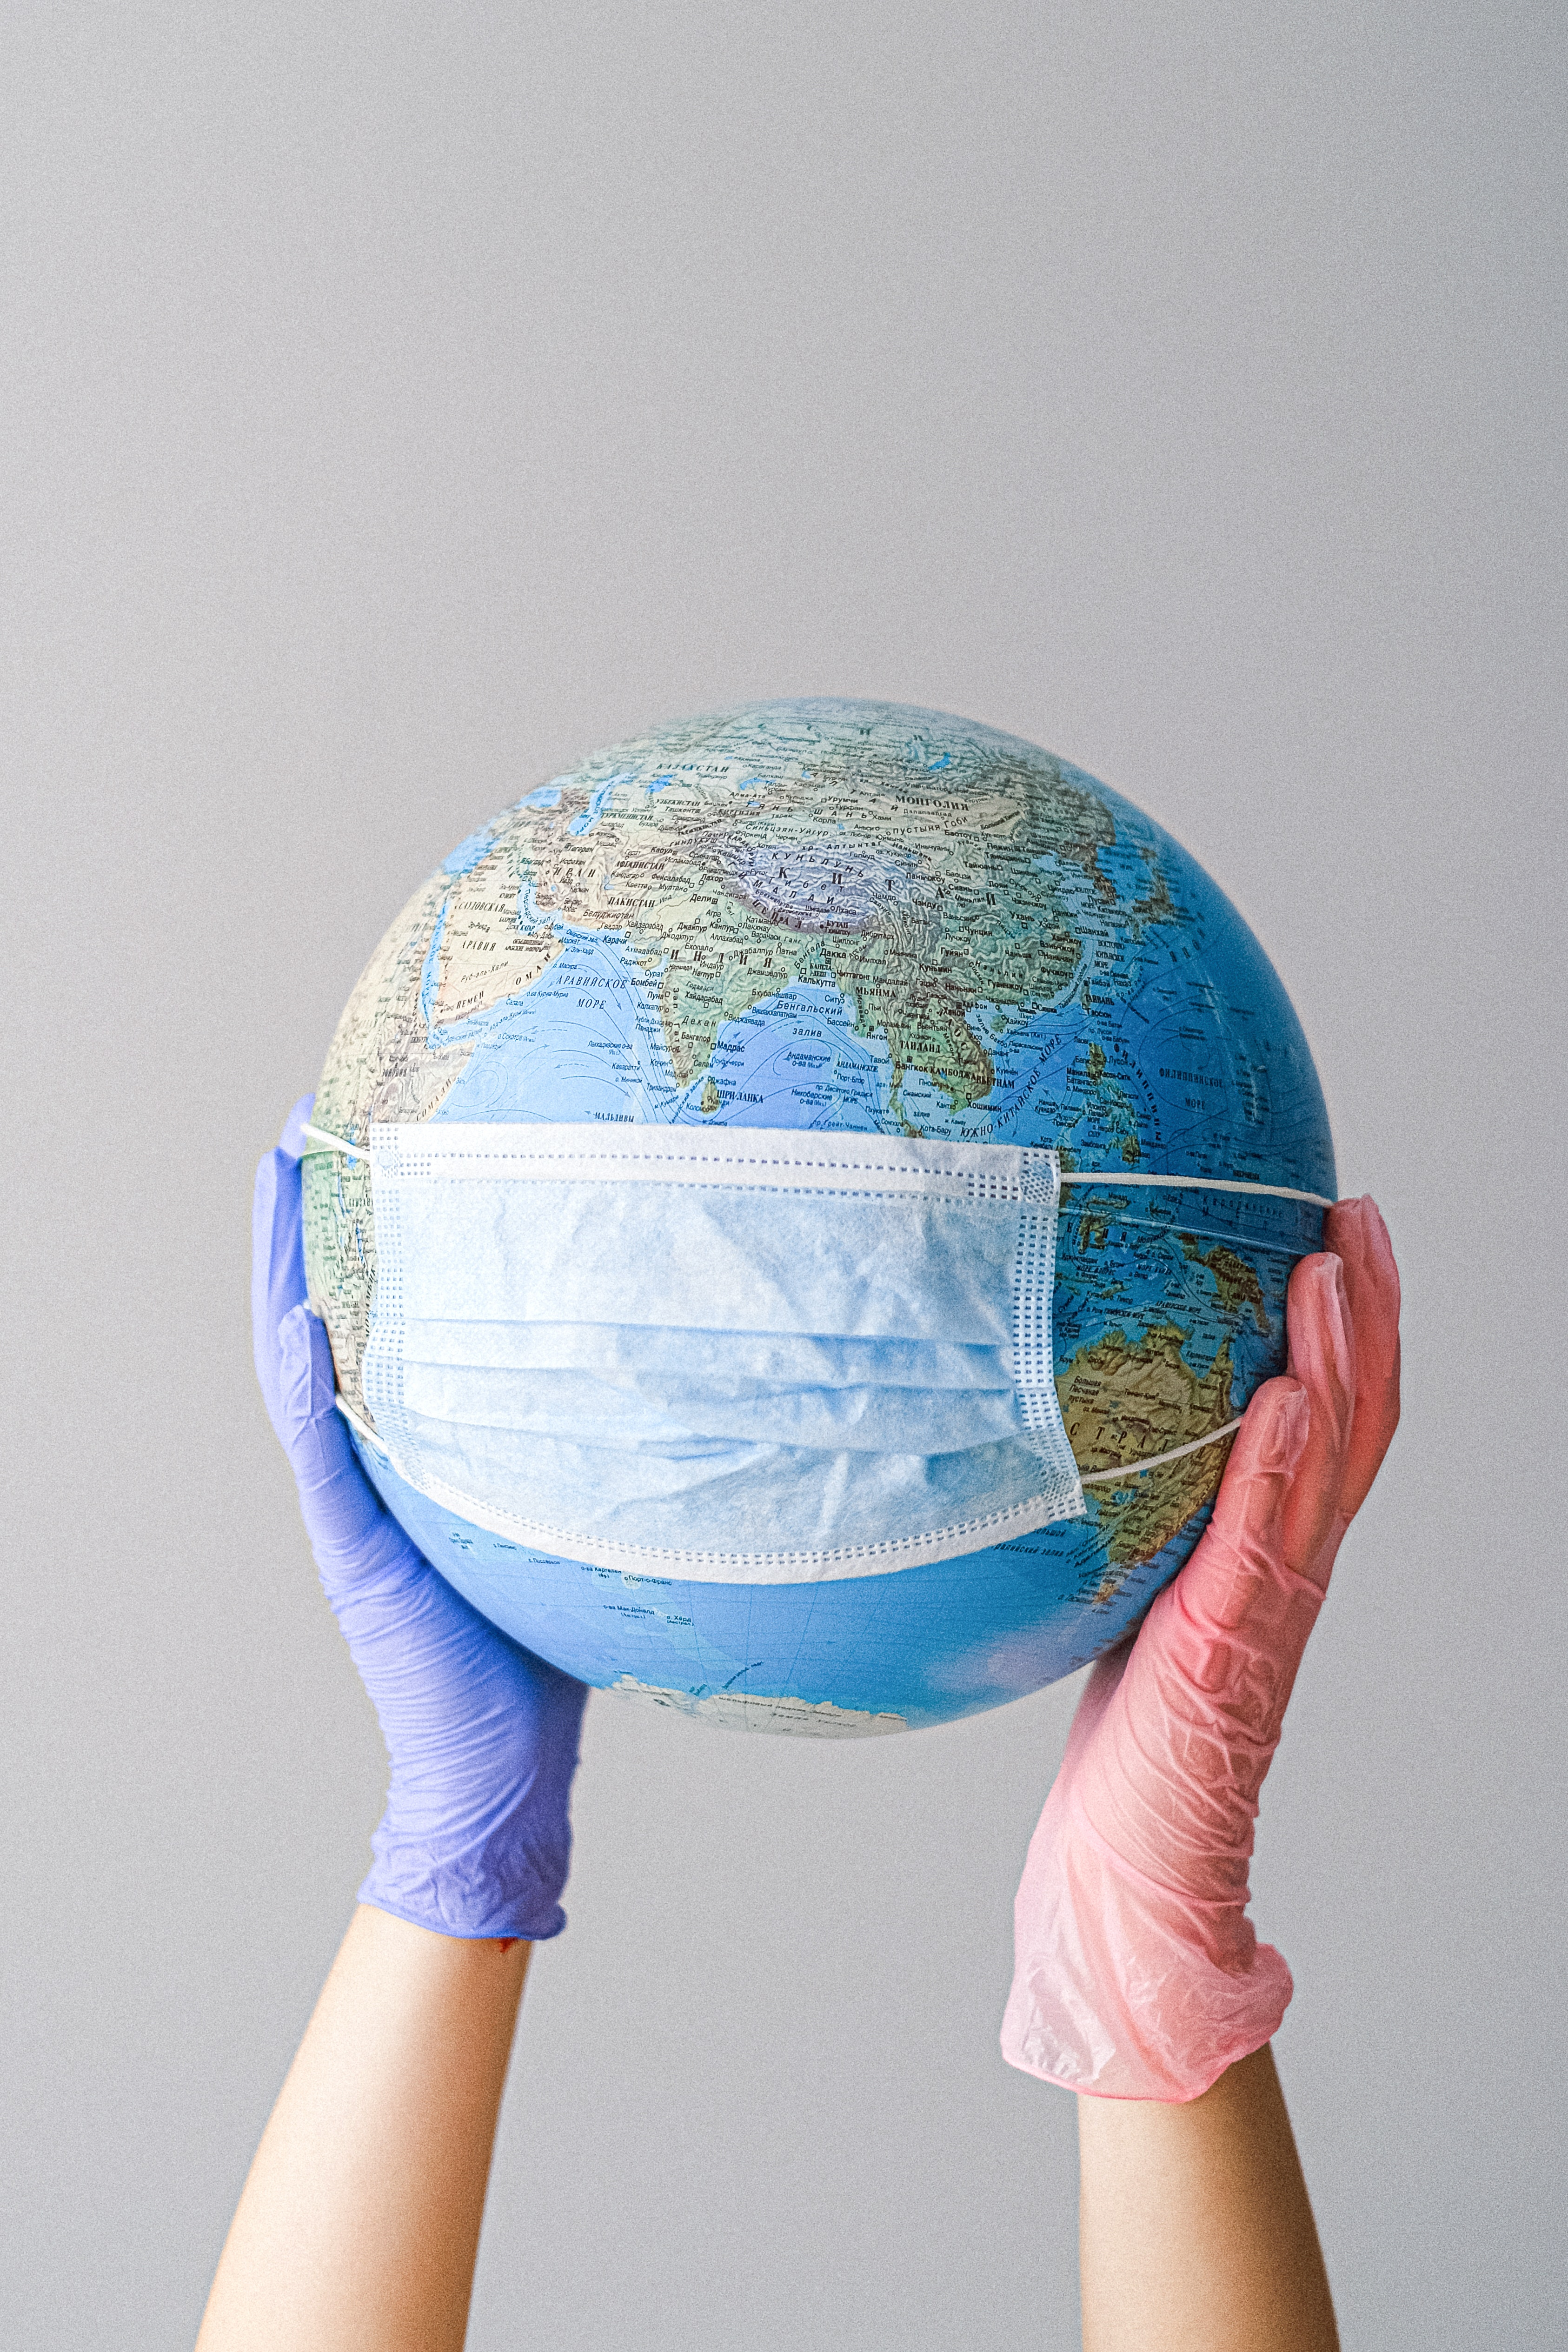 A person wearing latex gloves holds a globe with a disposable surgical face mask on it. Photo courtesy of Anna Shvets from Pexels.